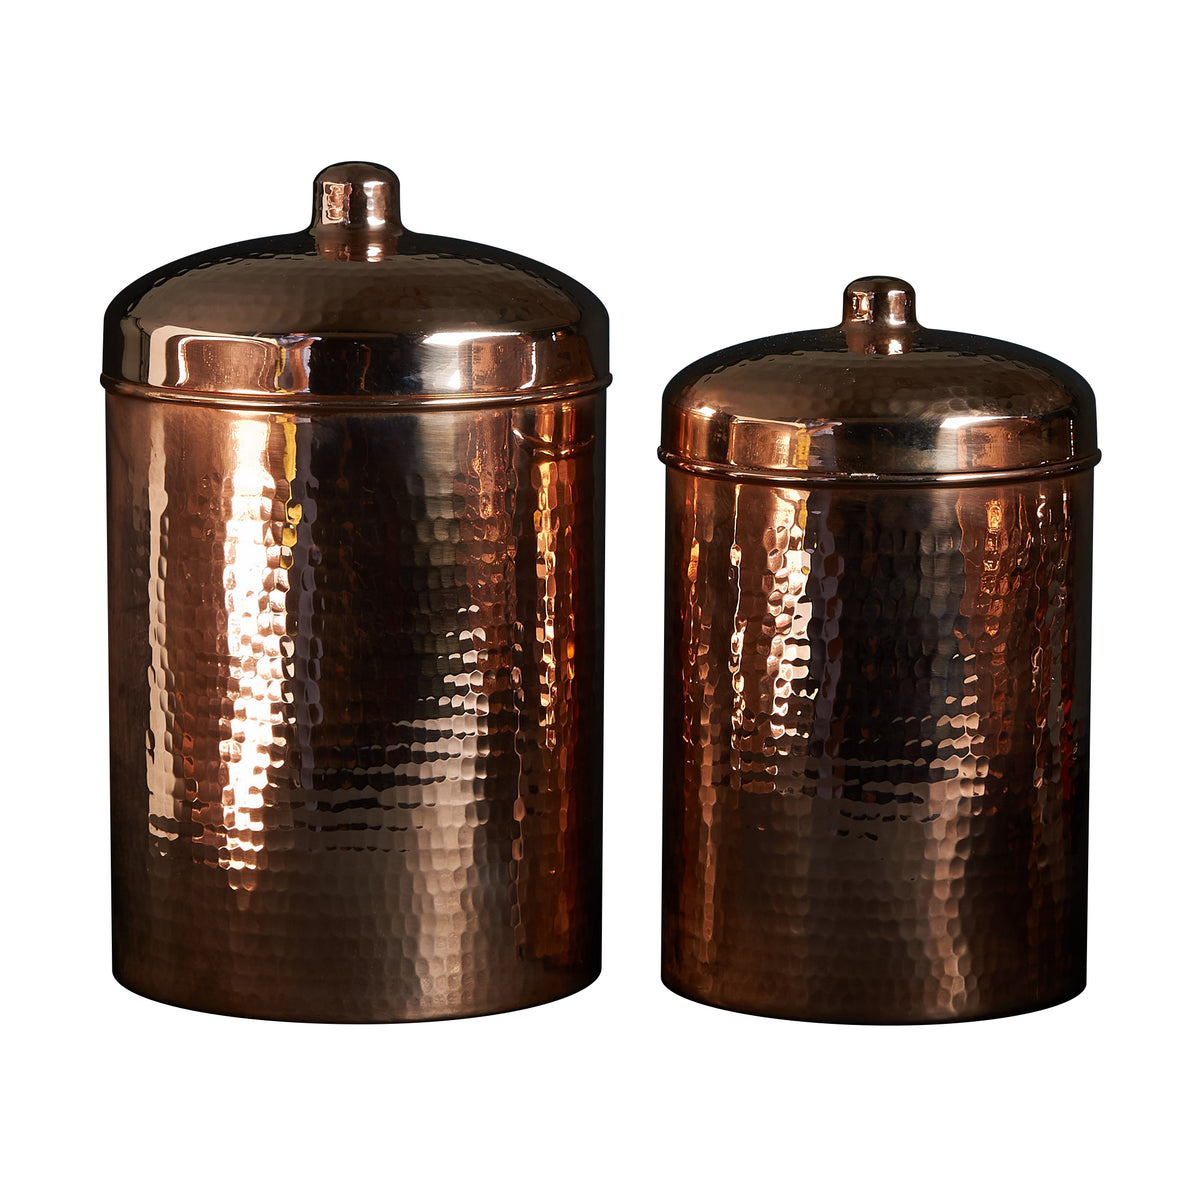 Copper Kitchen Canisters - Large Set, 2 Pieces